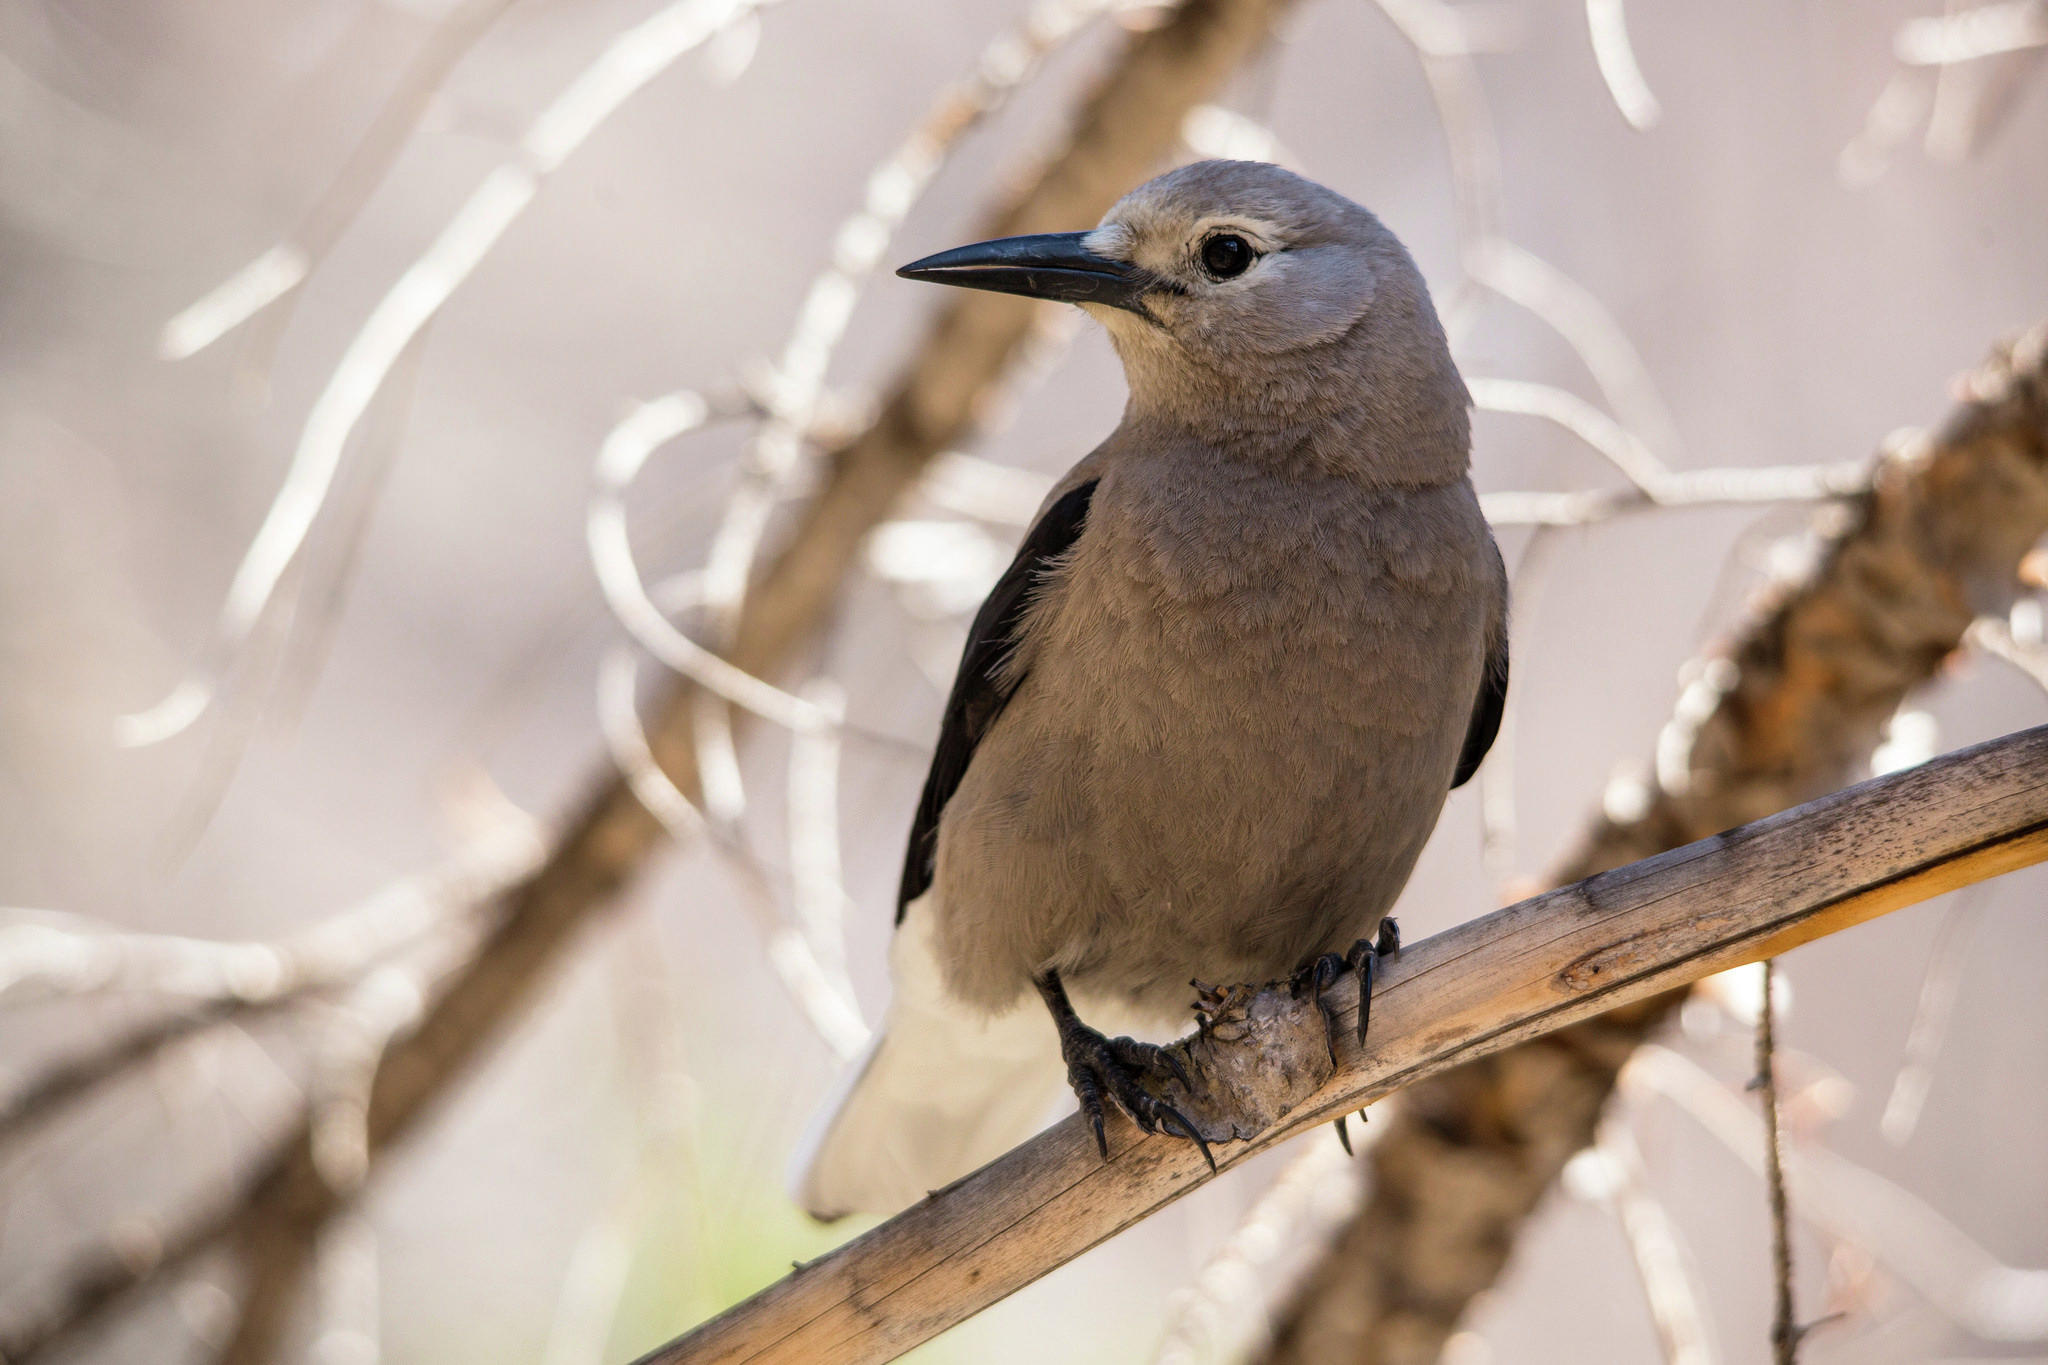 This Clark's Nutcracker was spotted at Rocky Mountain National Park. Flickr photo by Jacob W. Frank